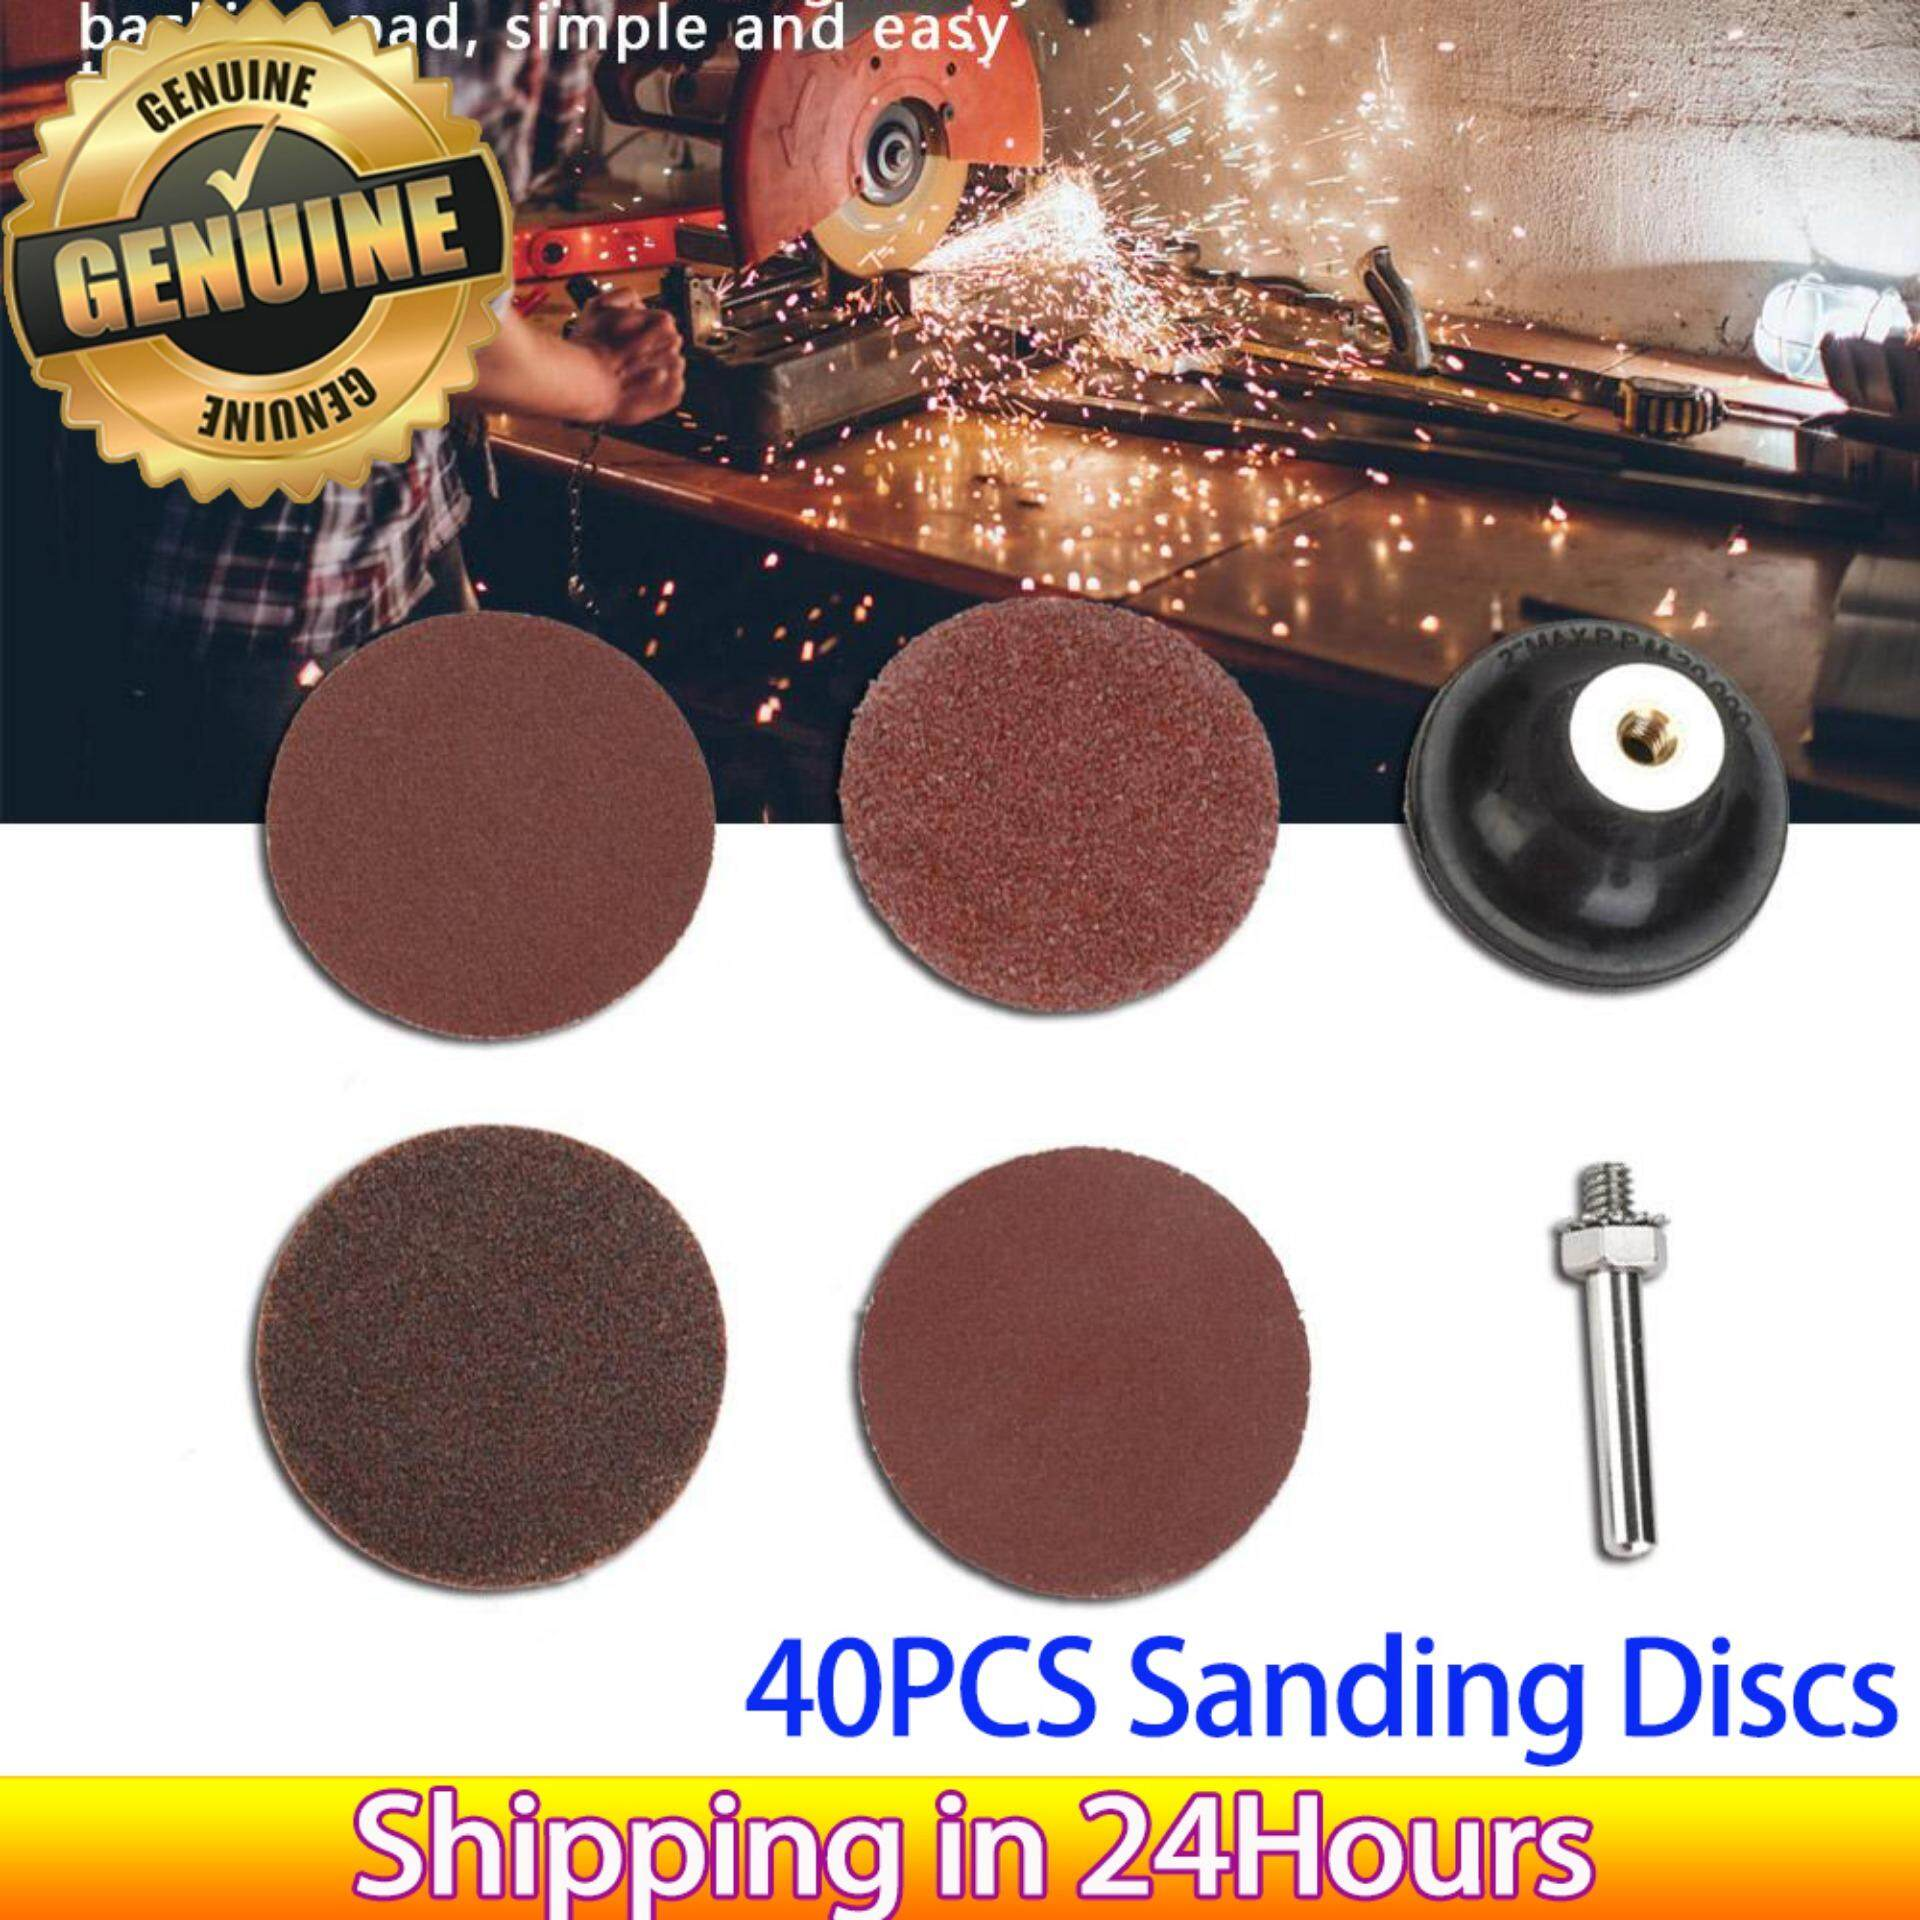 【Promotions】40PCS 2-inch Round Shape Sanding Discs 40 80 120 240# Grit Sand Papers with Sticky Backing Pad